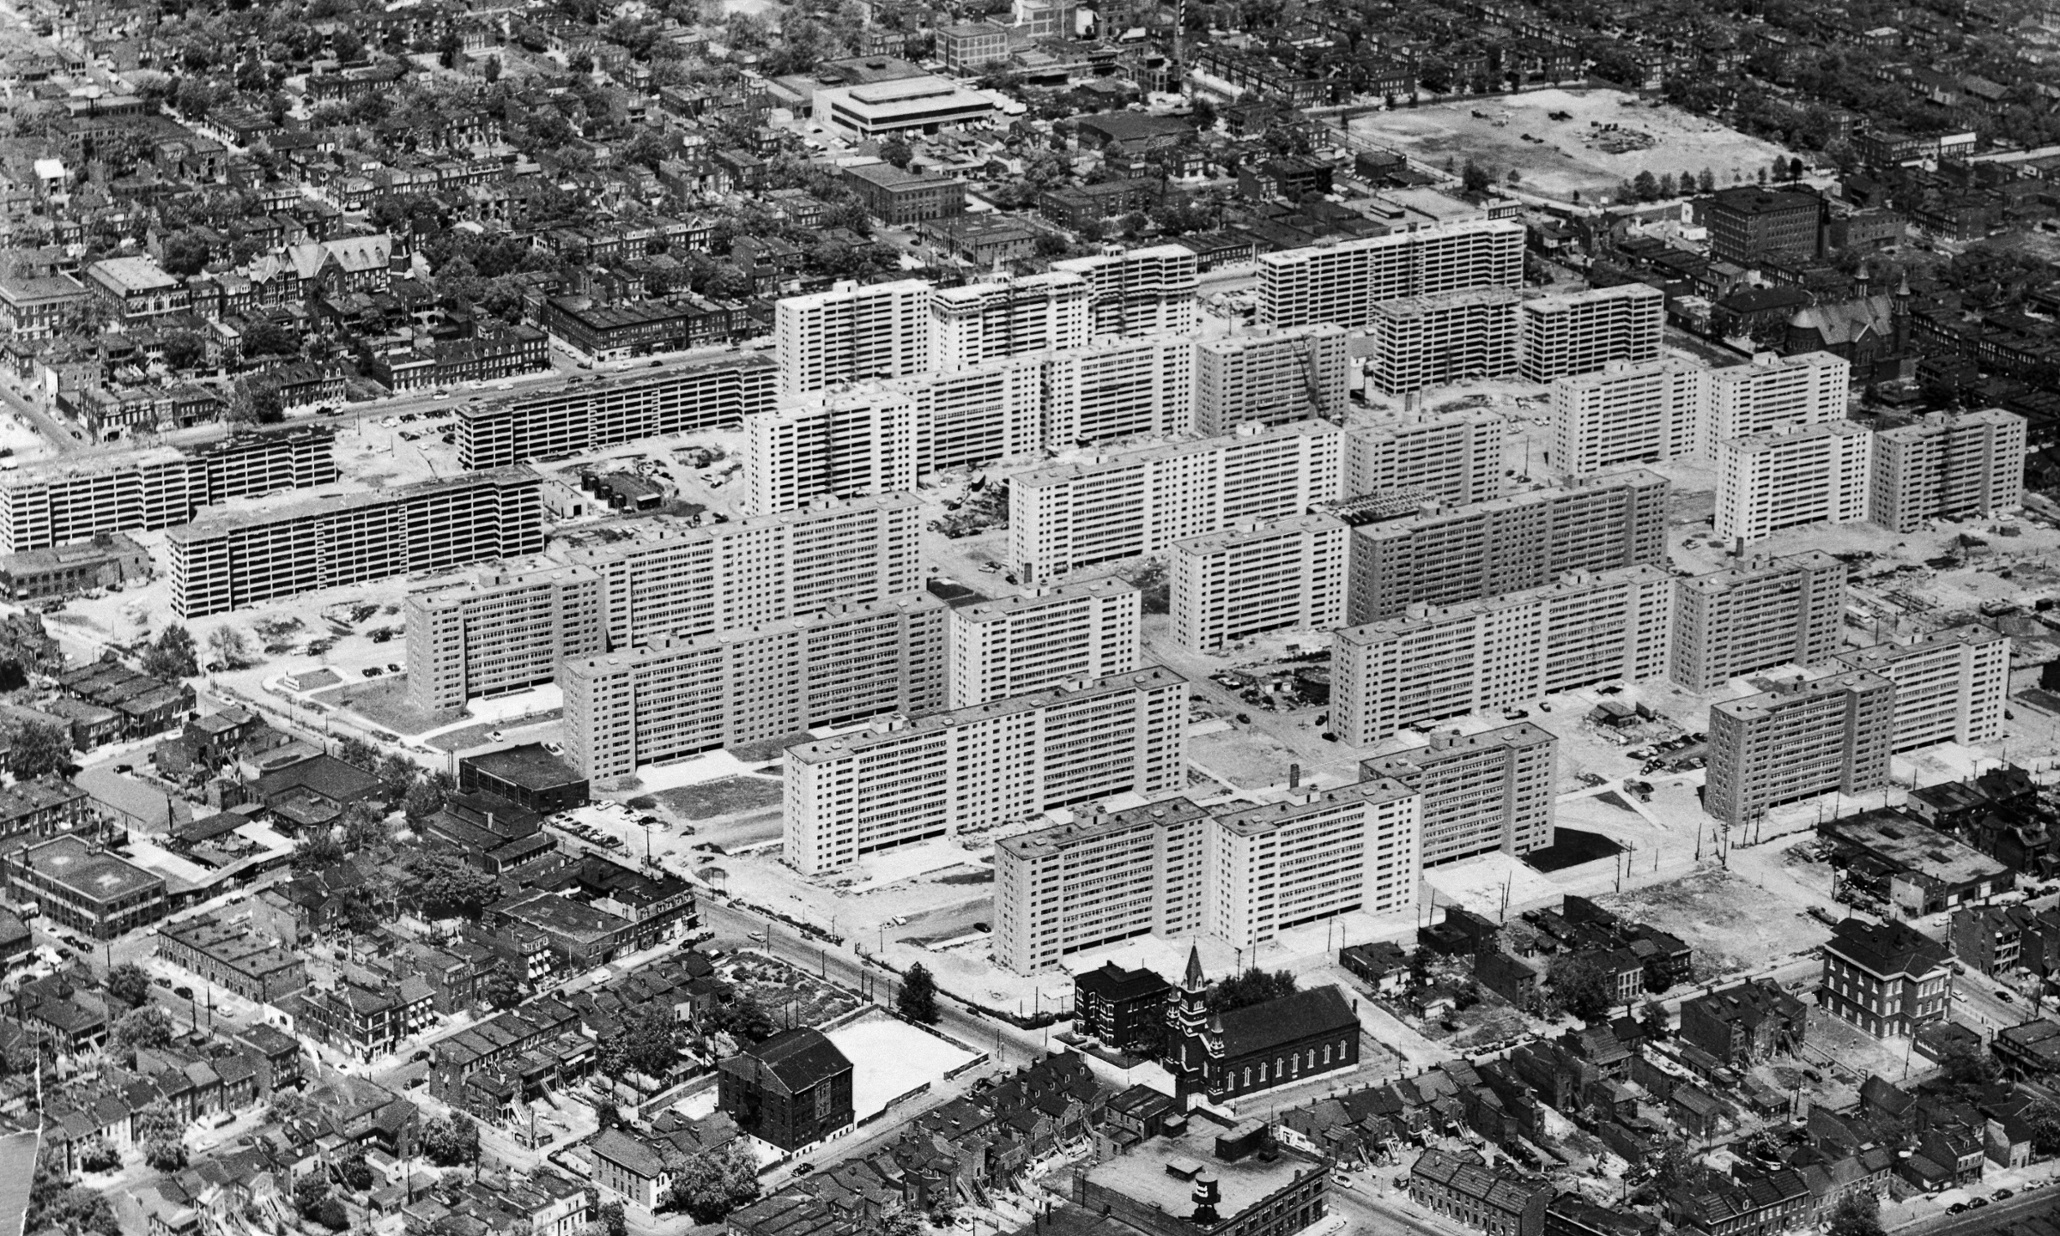 1956, St. Louis, Missouri, USA --- Original caption: 1956 aerial view of the massive Pruitt-Igoe housing project in St. Louis. Minoru Yamasaki, architect. --- Image by © Bettmann/CORBIS